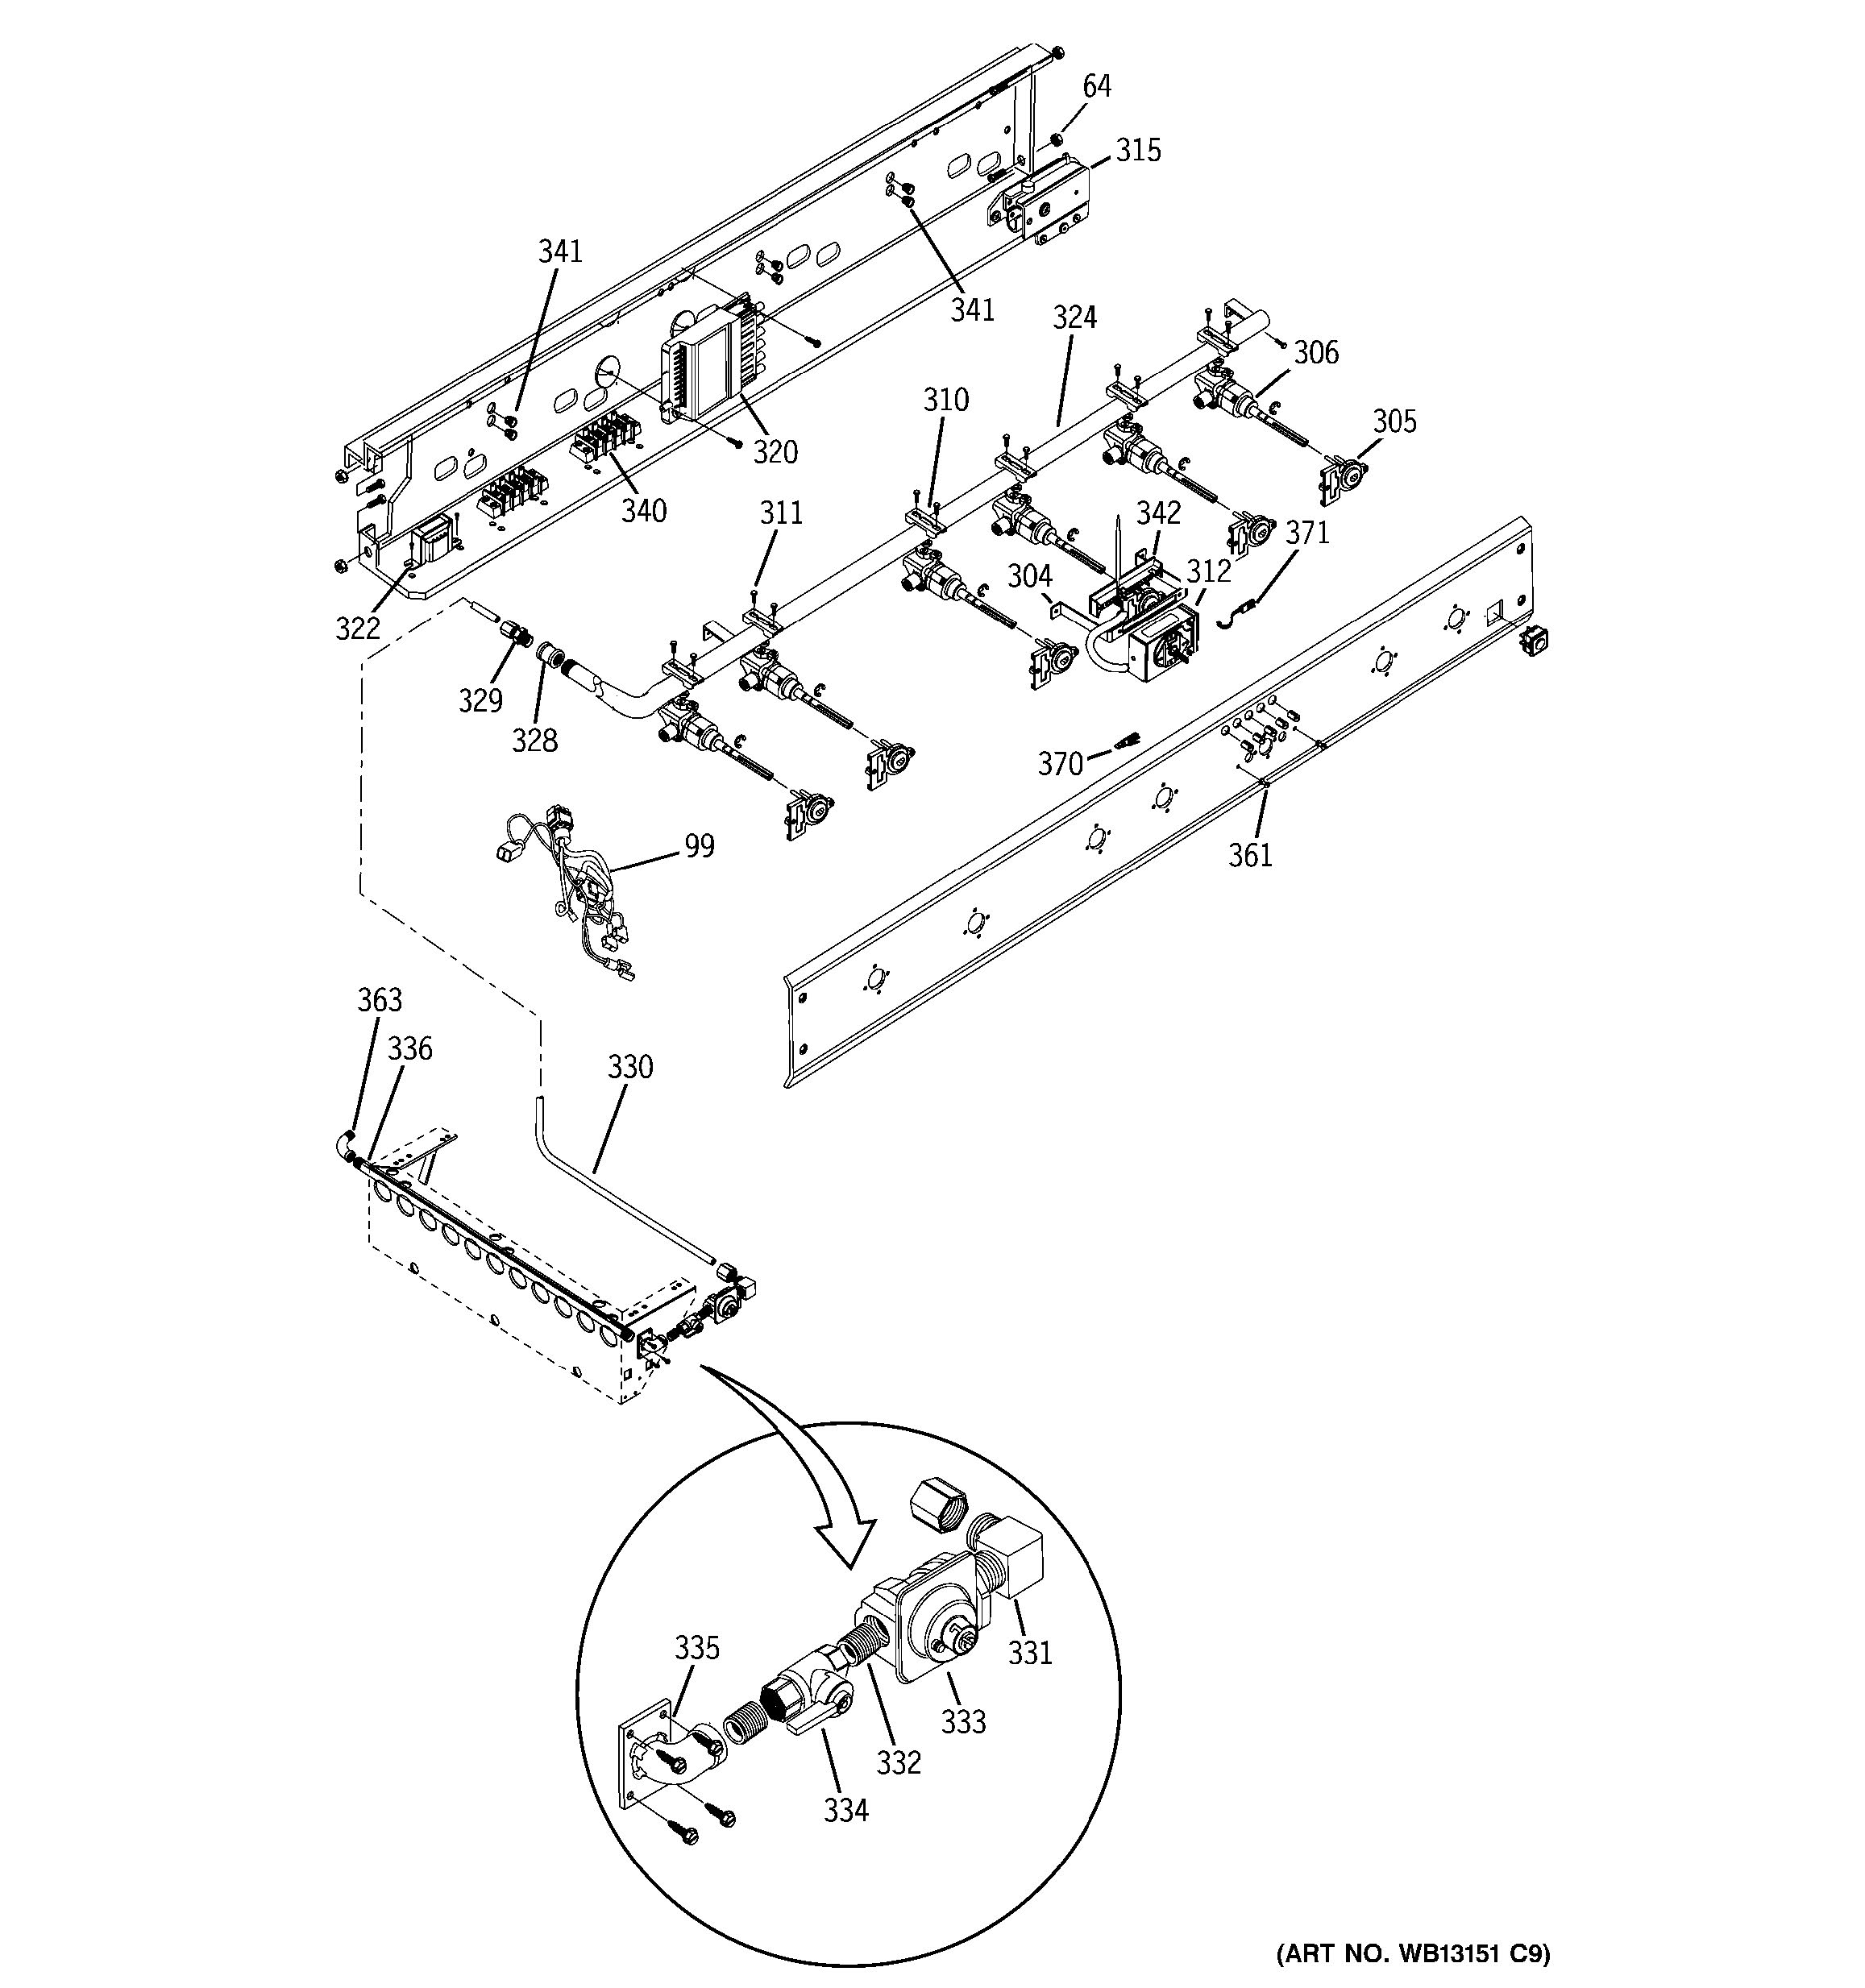 Assembly View For Manifold Assembly